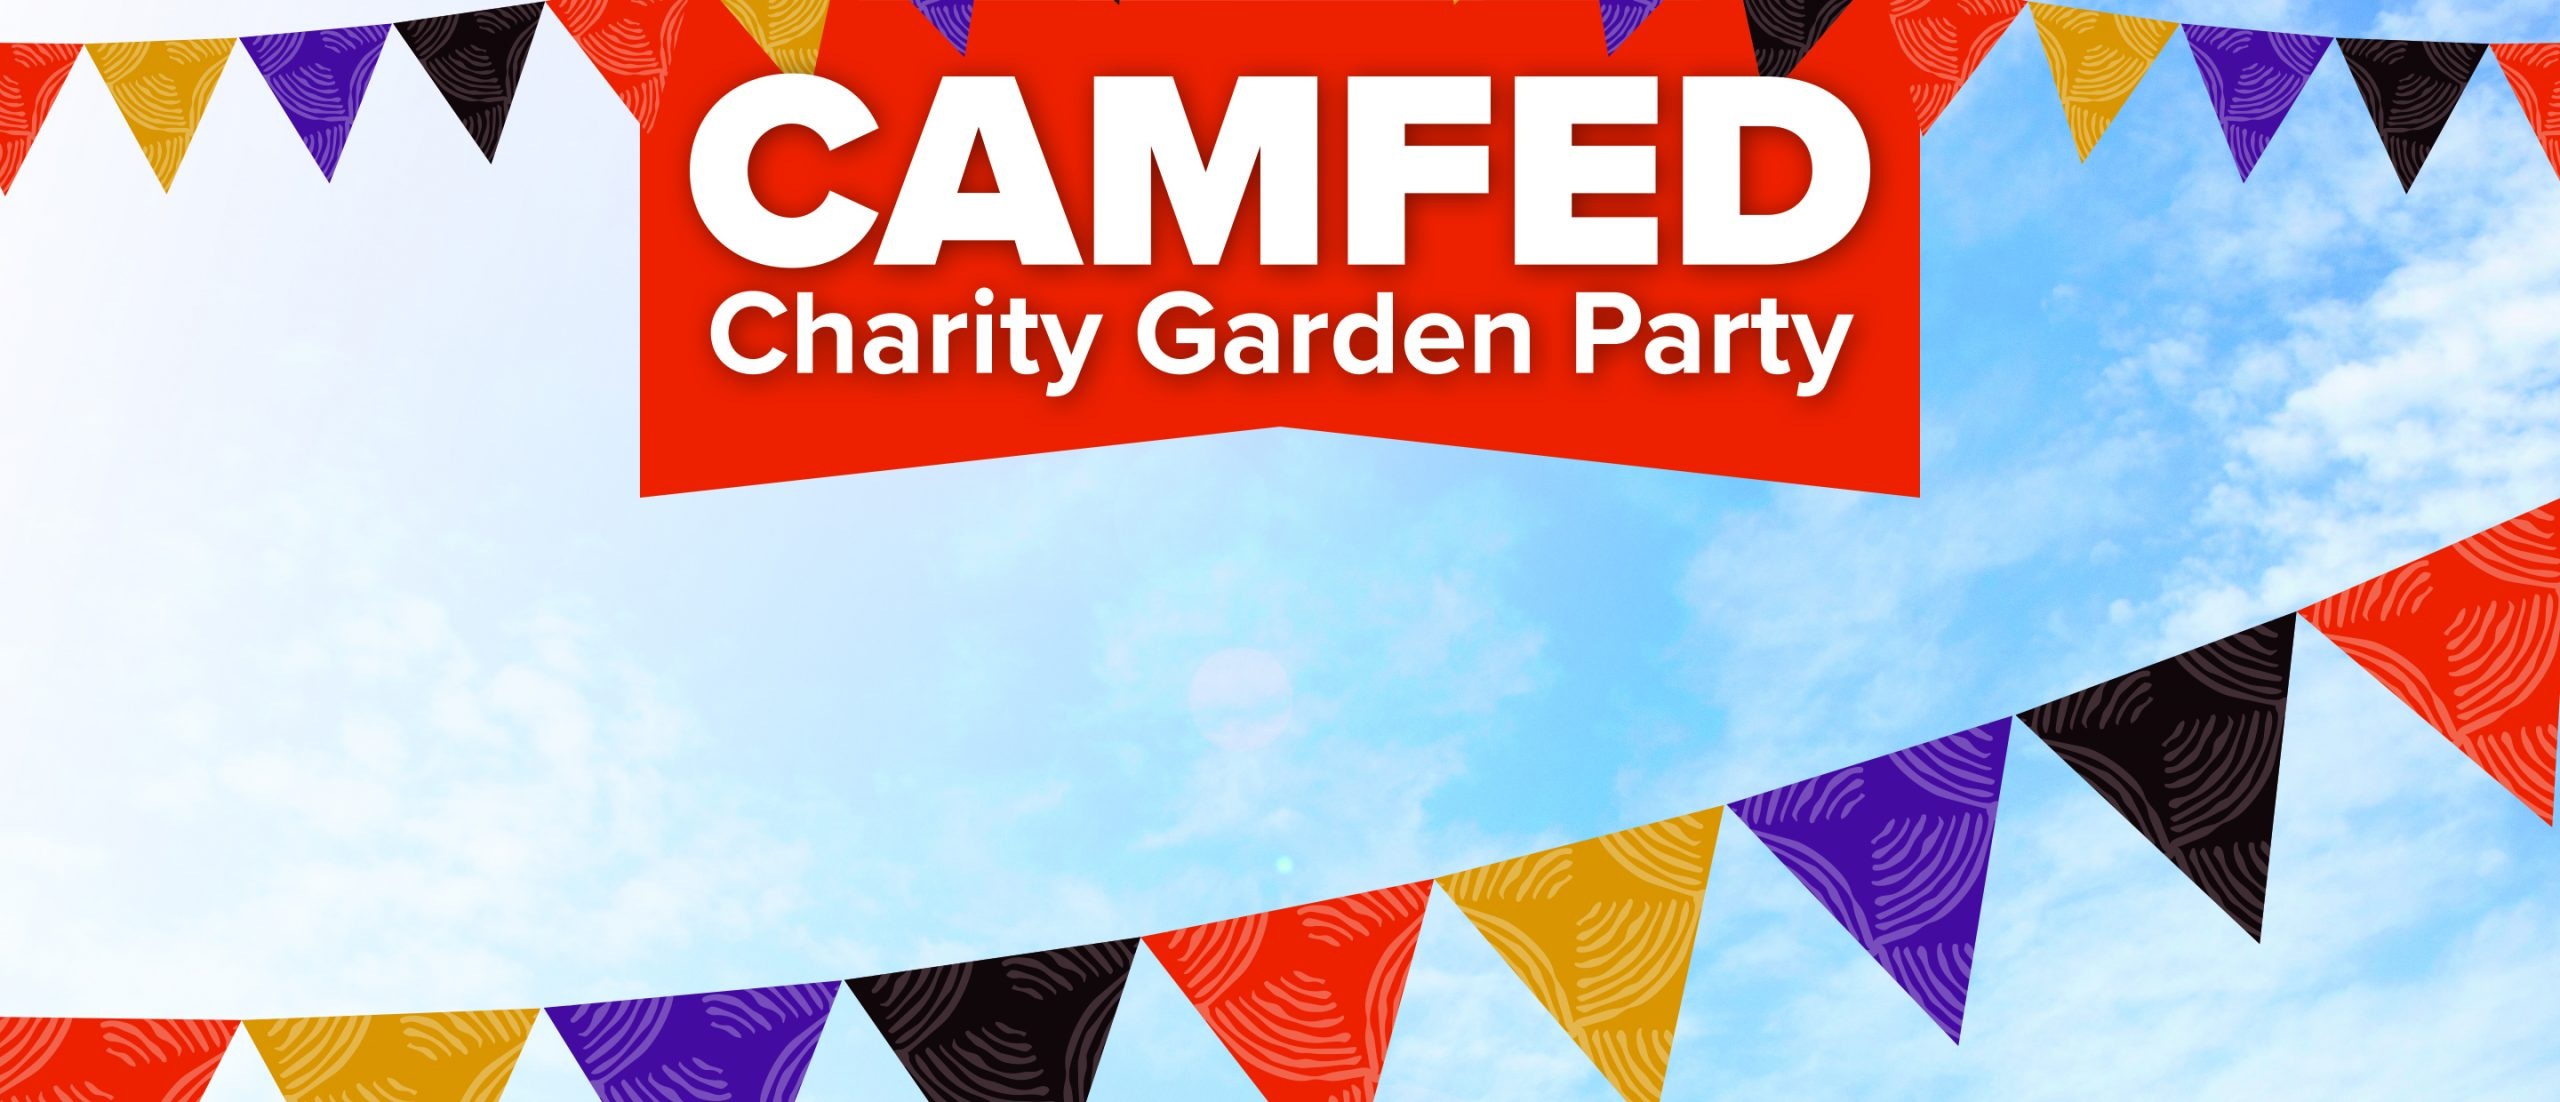 Hold a CAMFED garden party